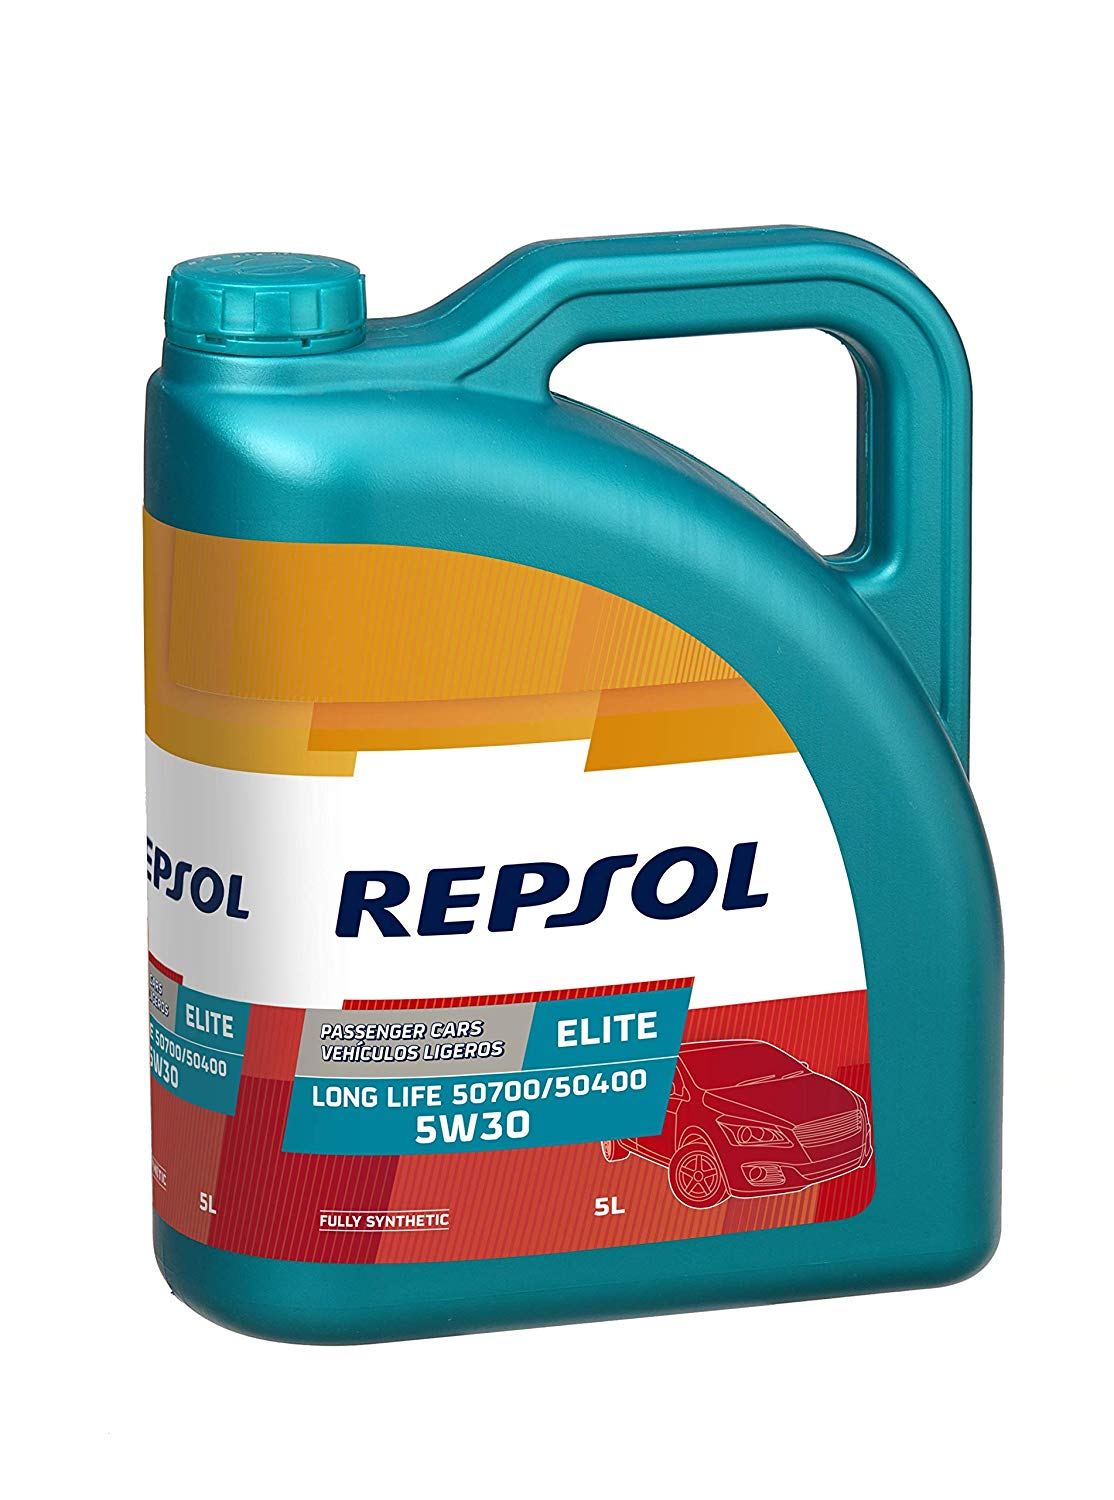 Repsol Elite Long Life Motoröl amazon